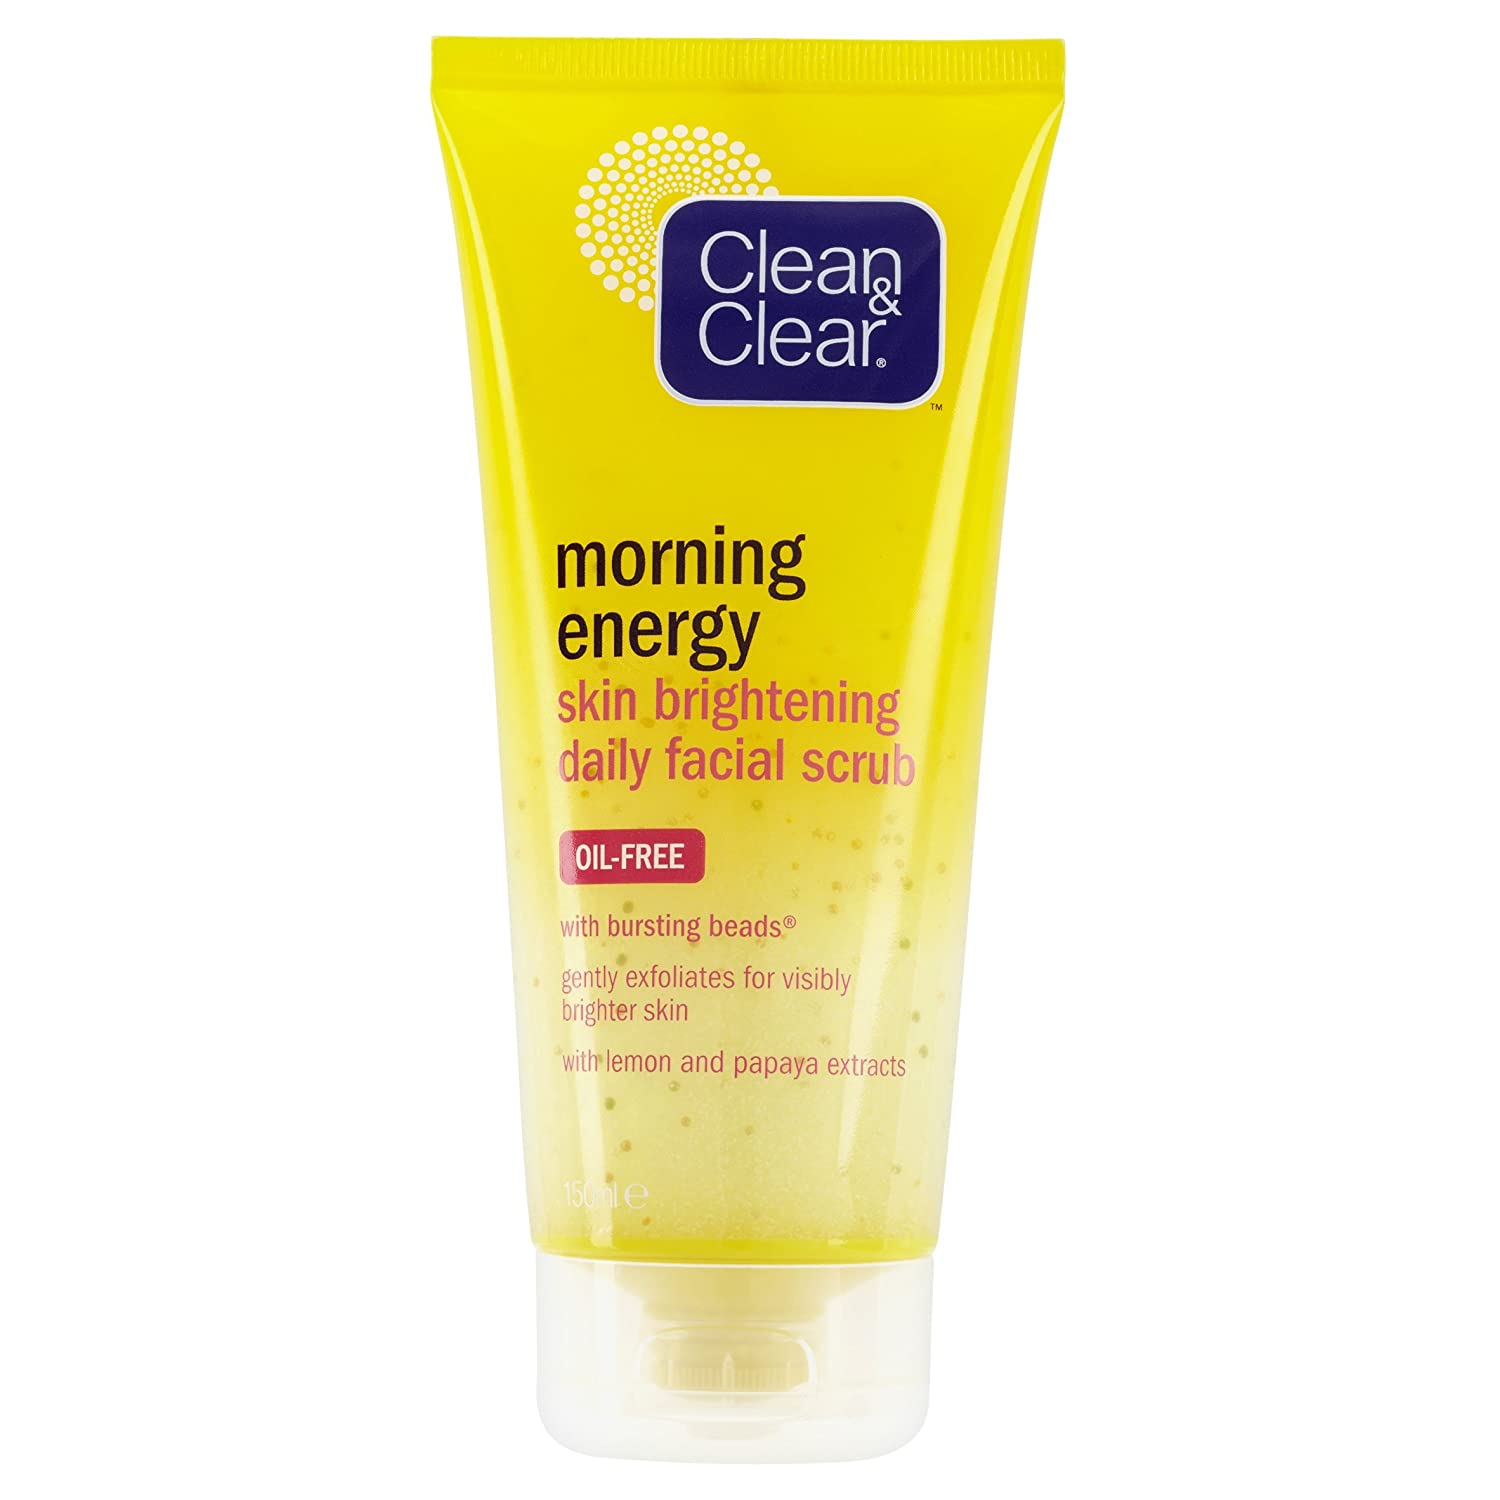 Clean & Clear Morning Energy Skin Brightening Daily Facial Scrub 150 ml Johnson and Johnson 7282801